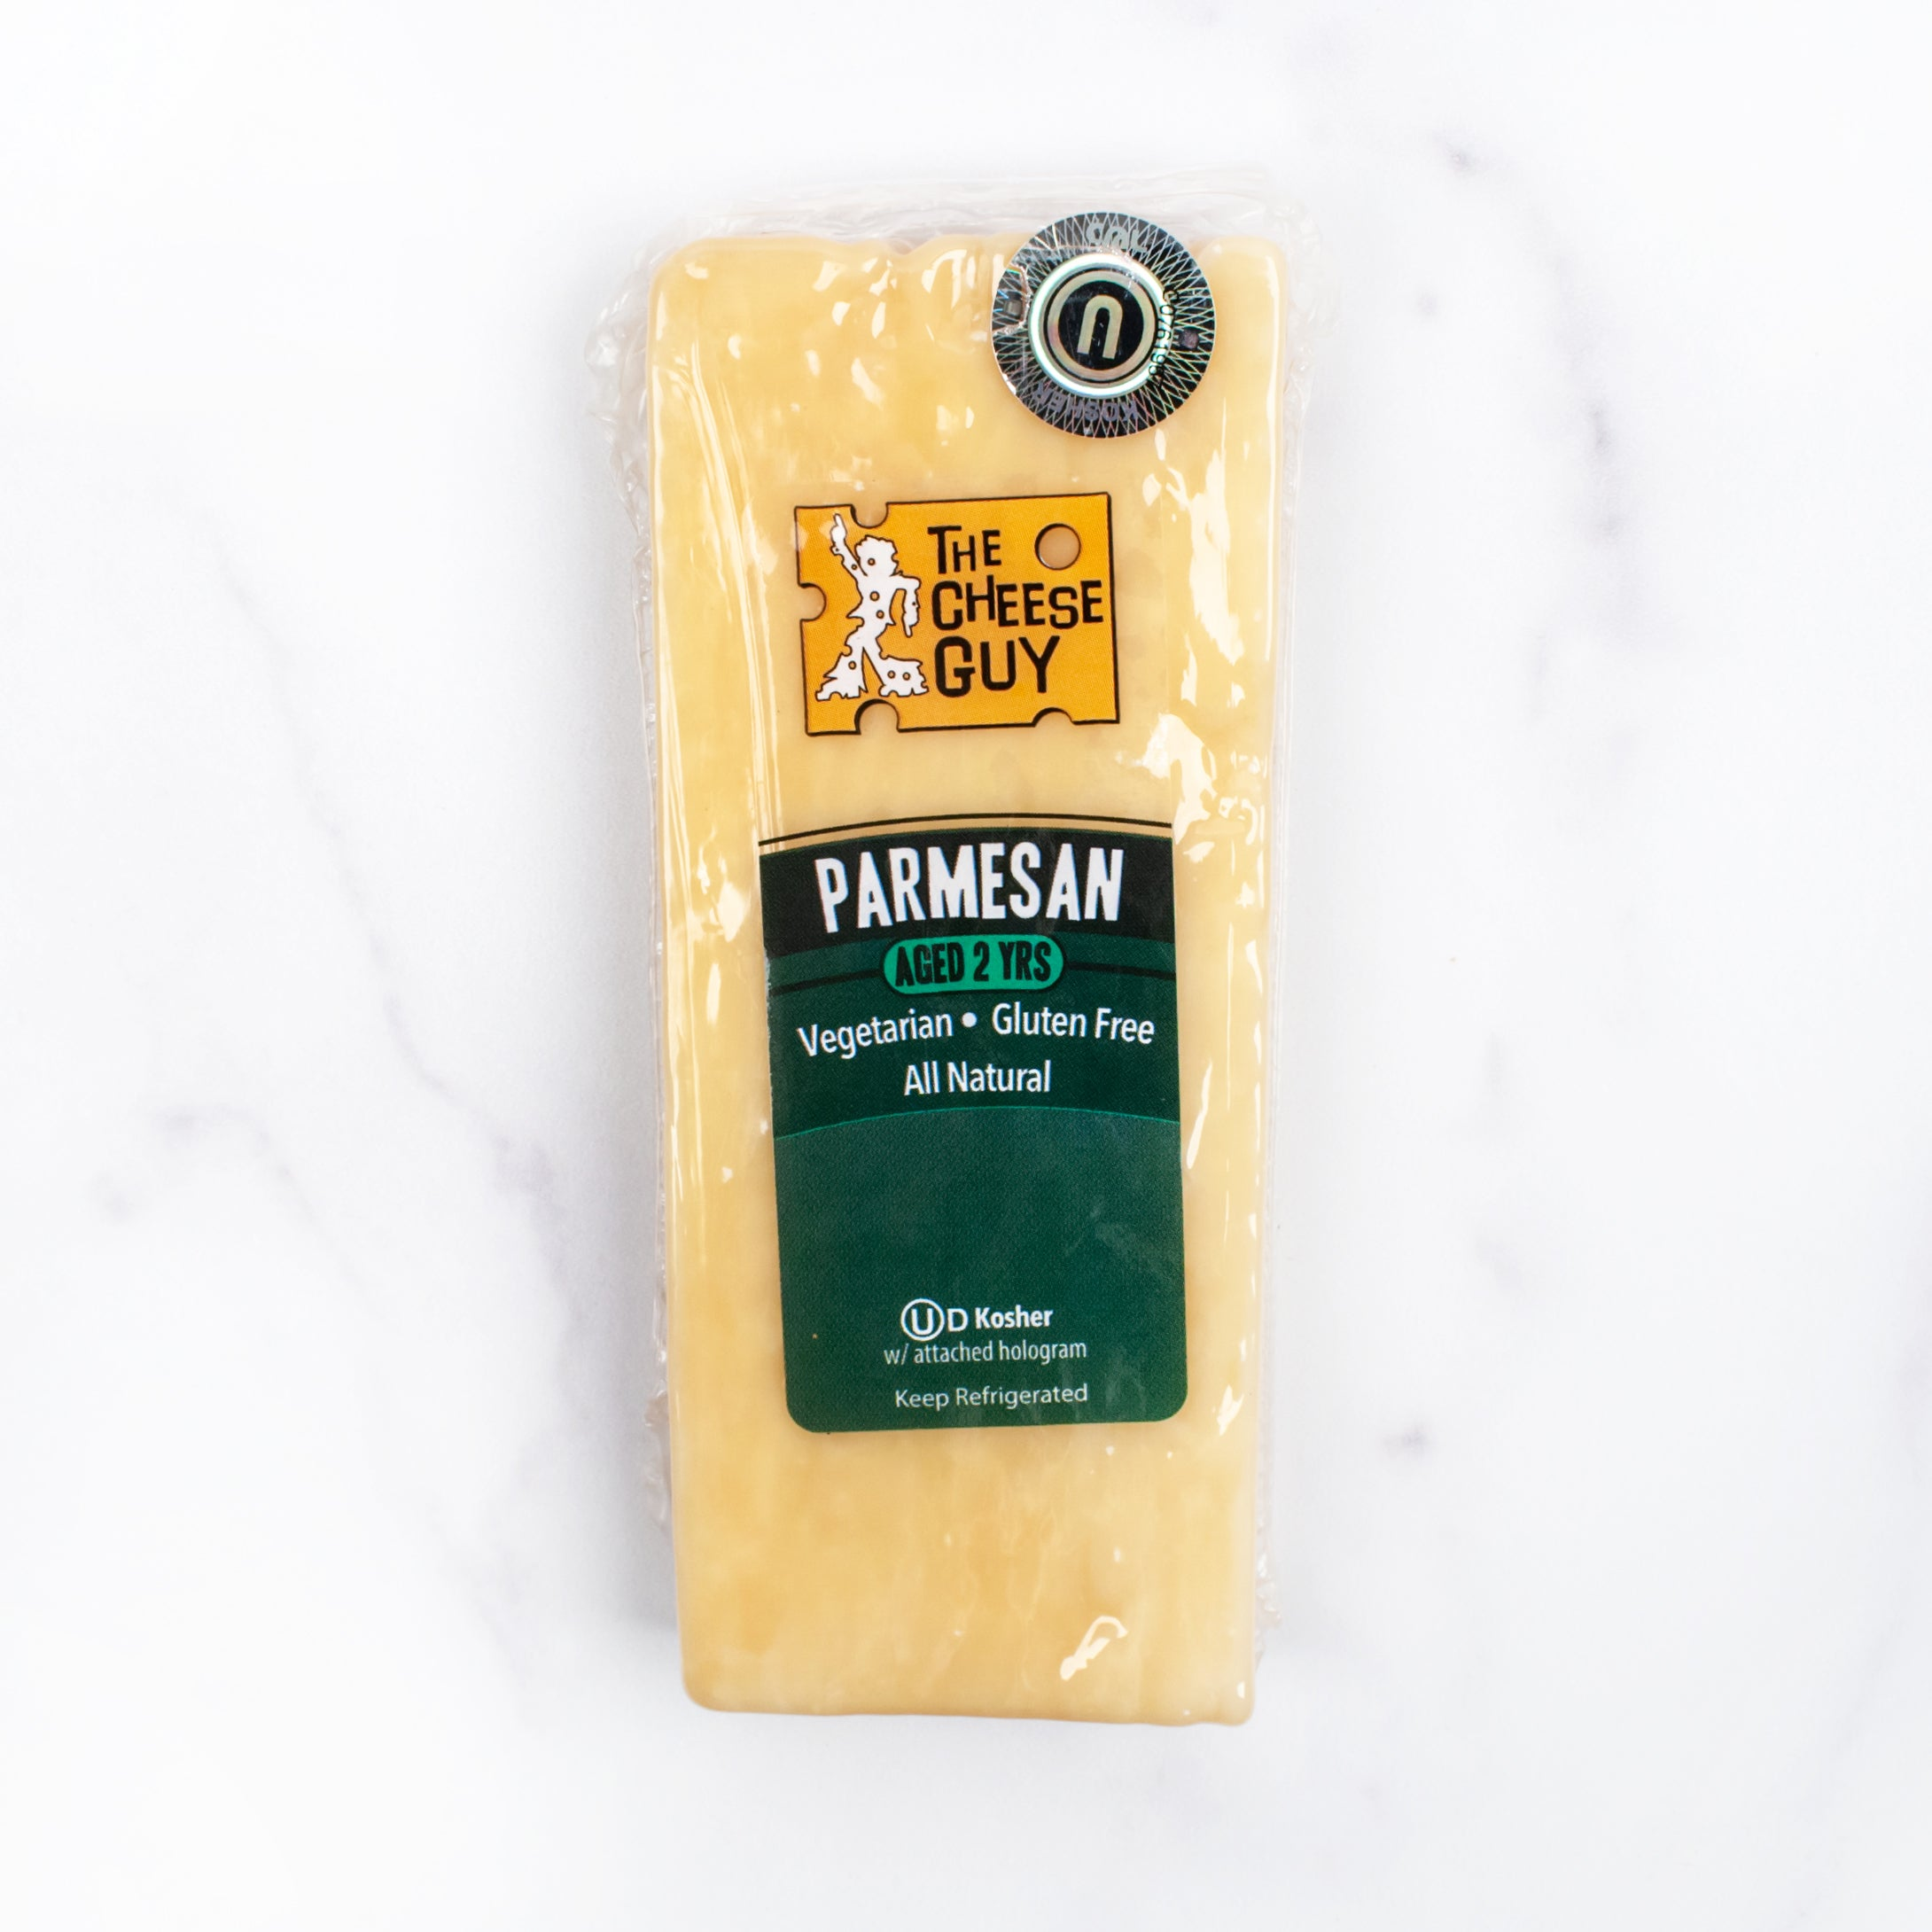 2 Year Parmesan Cheese (Kosher)